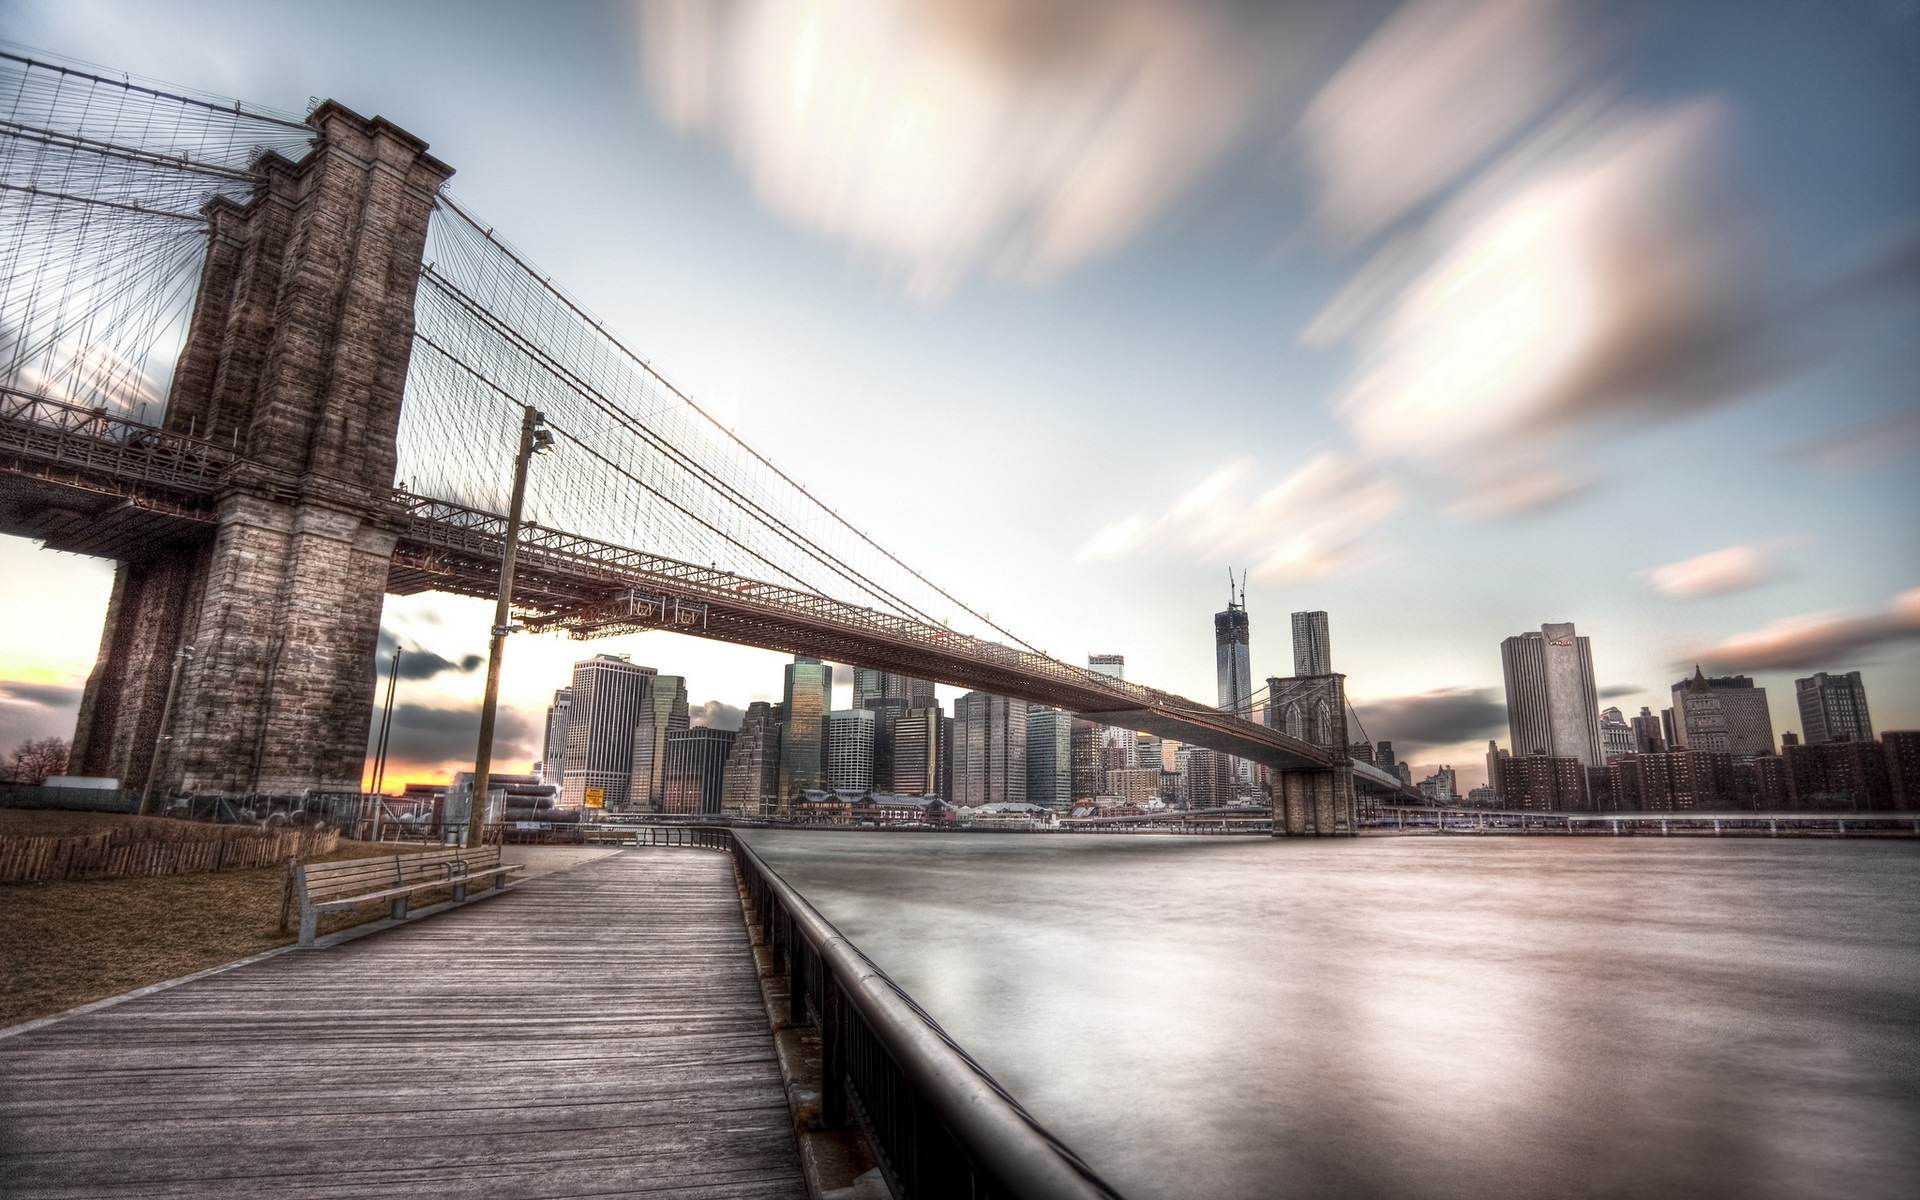 Brooklyn Bridge Hd Wallpaper Background Image 1920x1200